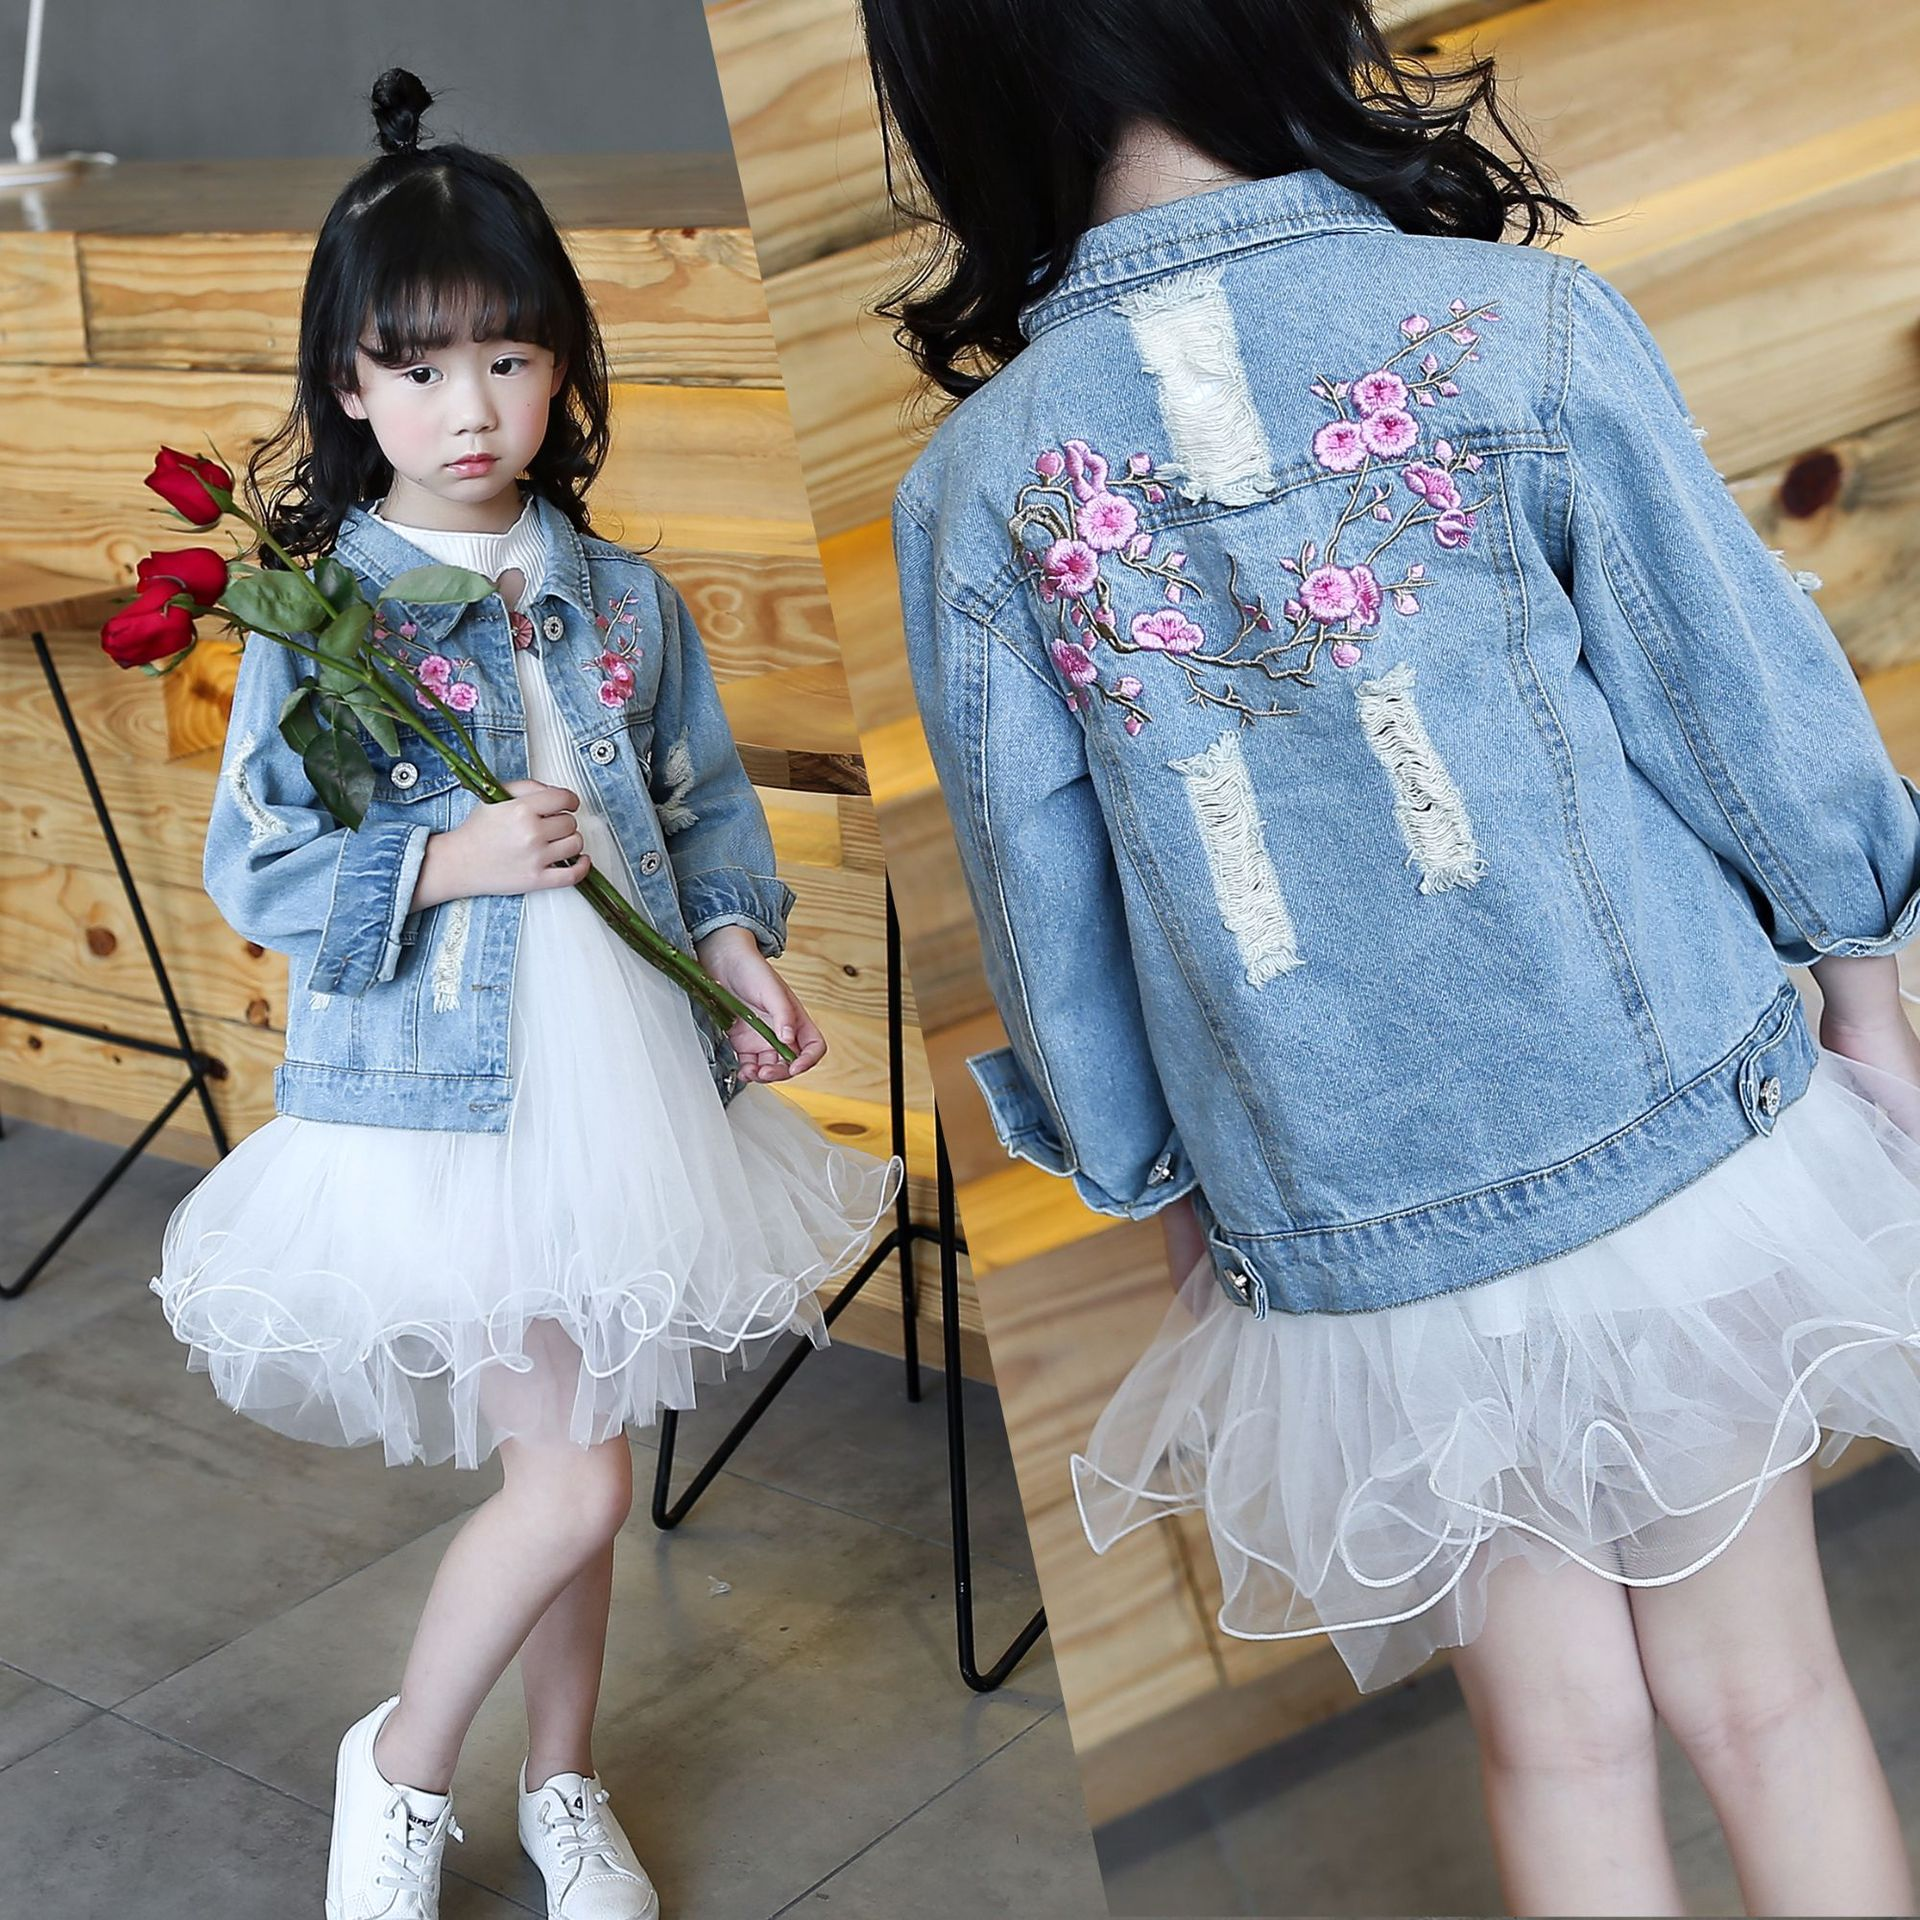 Children's Denim Jacket for Girls Spring Toddler Kids Embroidery Casual Hole Jeans Coat Outfits Girls Clothes 4 5 6 8 10 12 Year